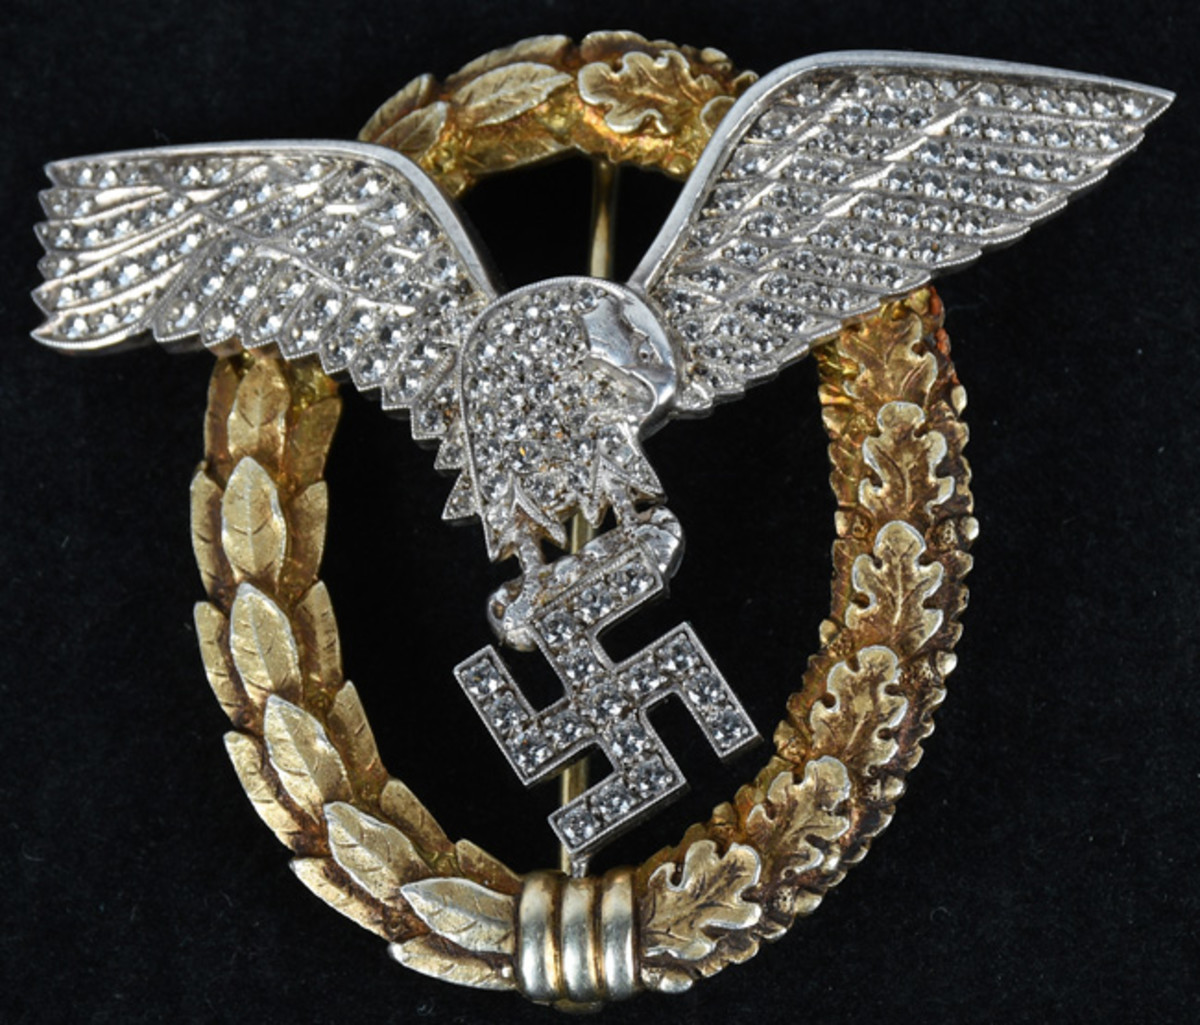 """WWII Nazi Luftwaffe gold """"Double Badge,"""" 150 brilliant-cut diamonds, created under instruction of Hermann Goring, who awarded them to favored Luftwaffe pilots, other important Third Reich figures. Detlev Niemann COA. Estimate: $70,000-$80,000. Milestone Auctions"""